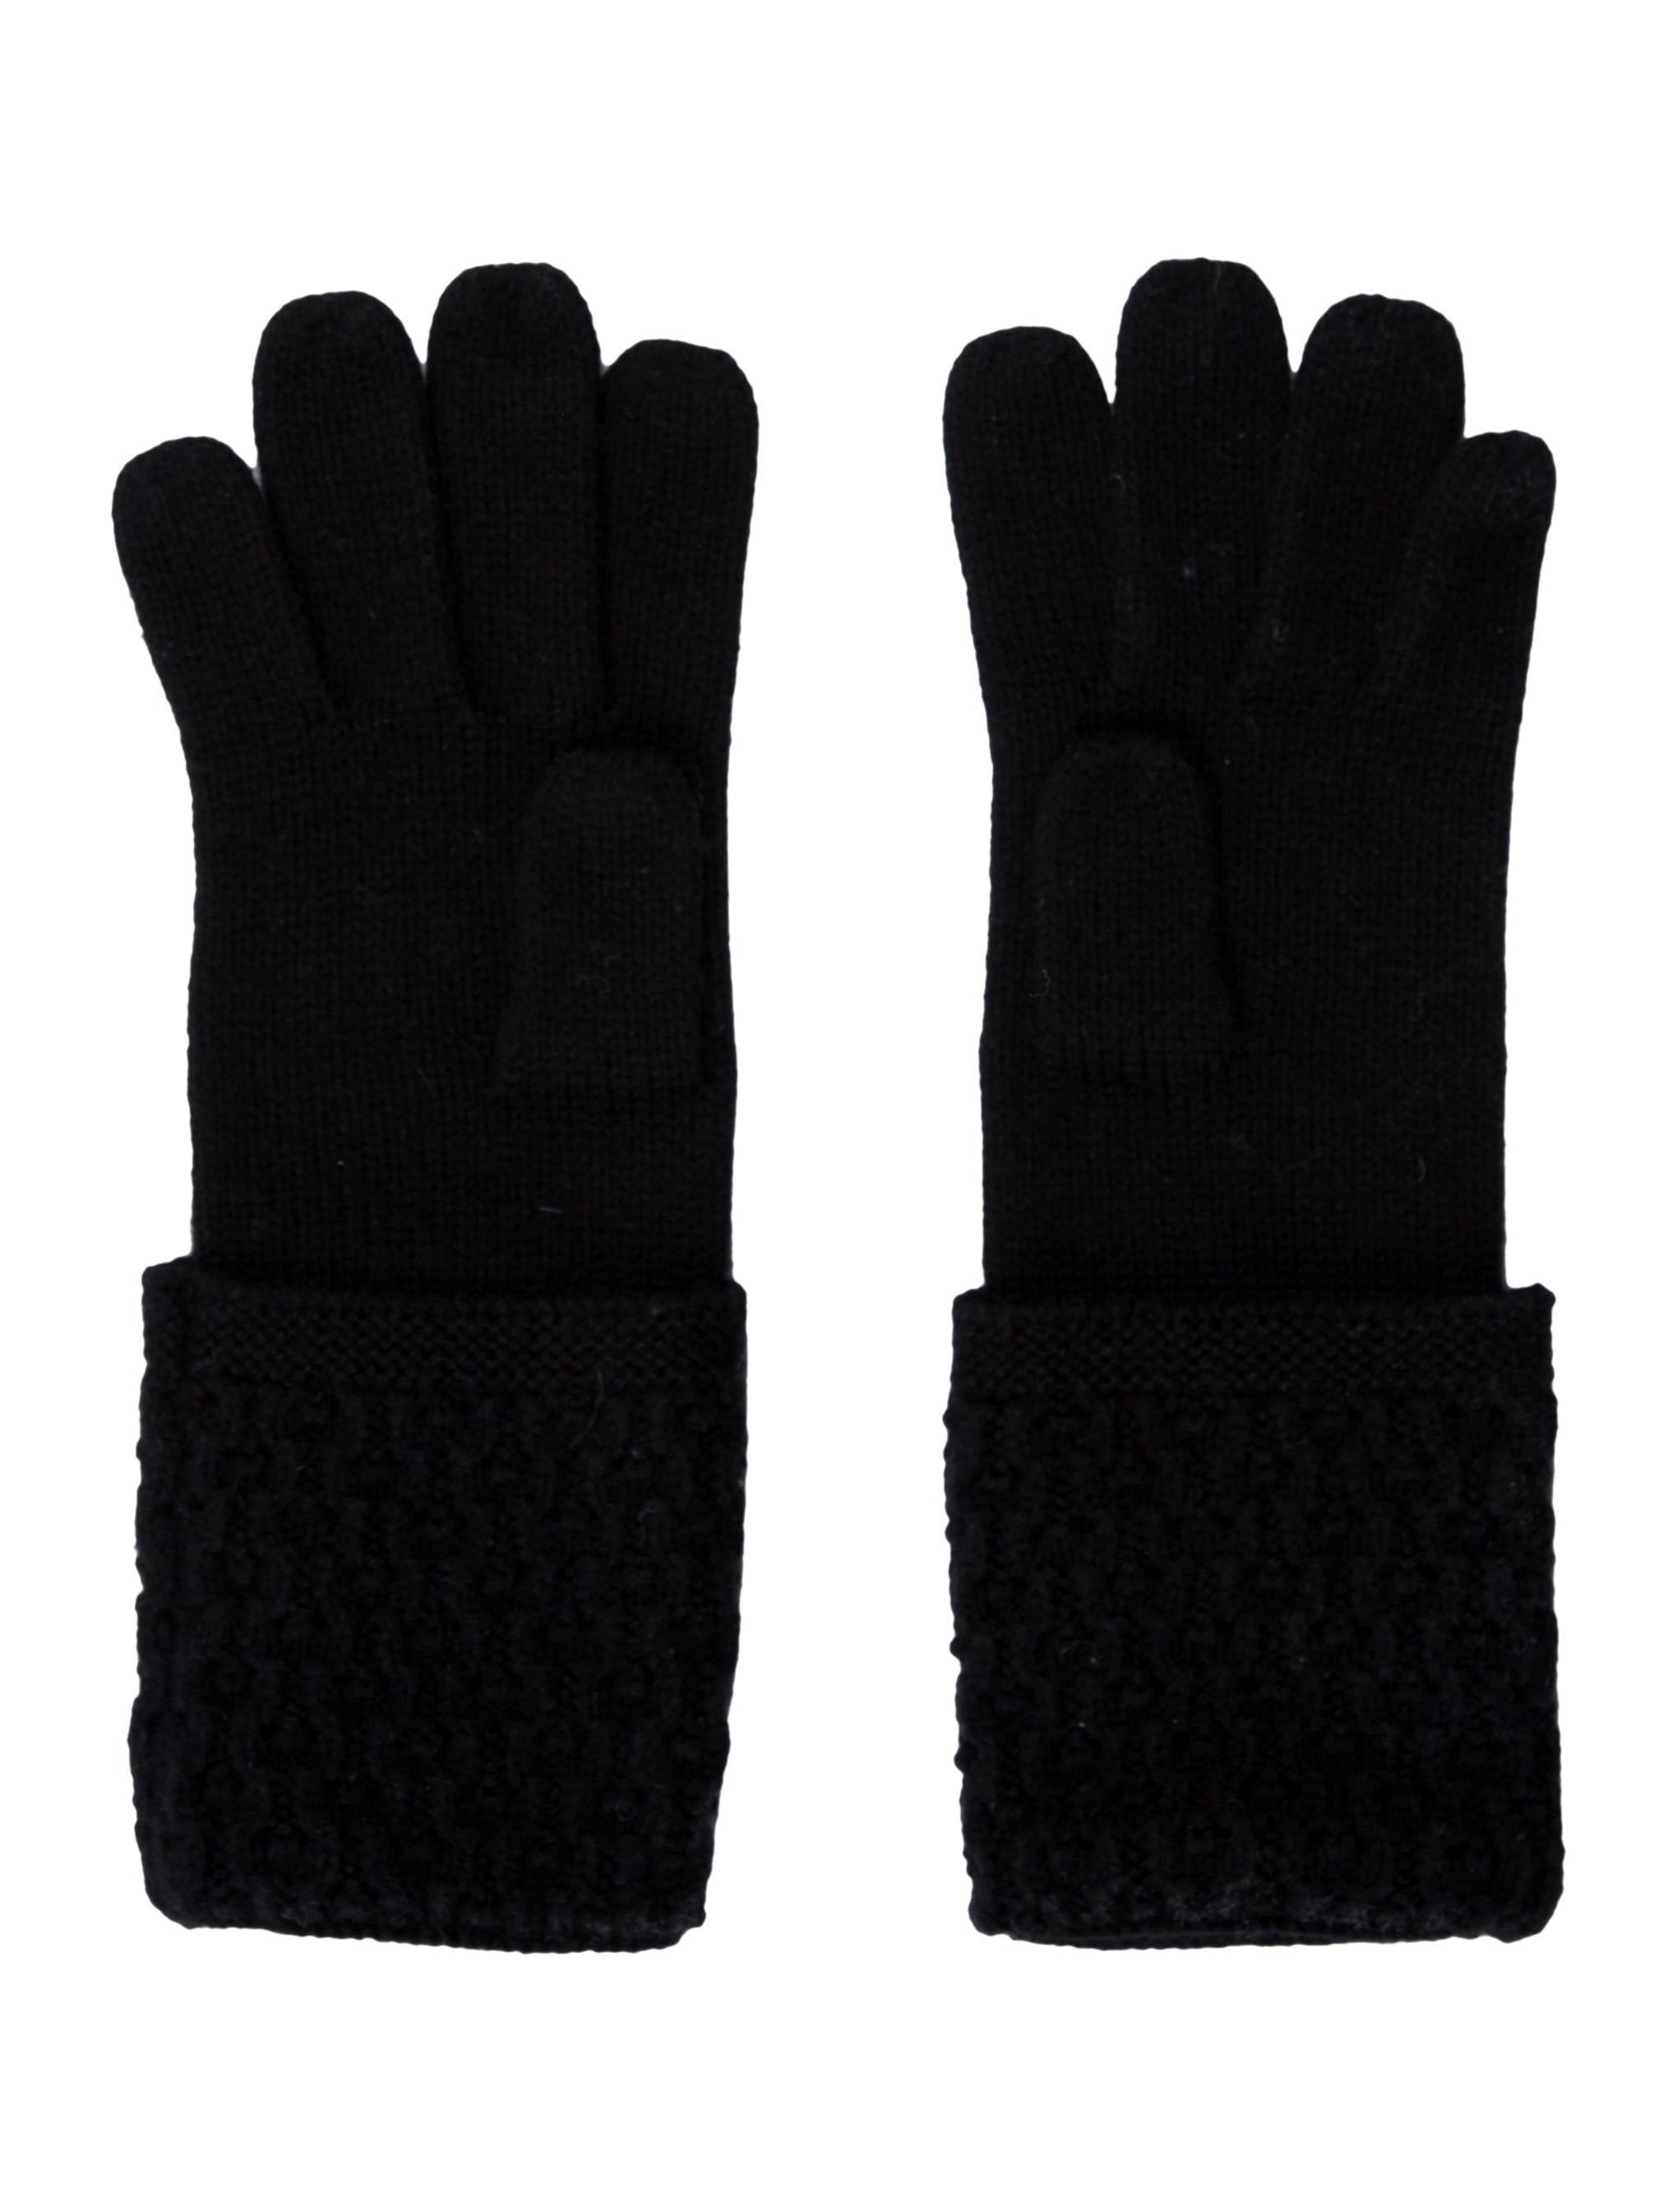 Chanel Cashmere Logo Gloves - Accessories - CHA93566 | The ...